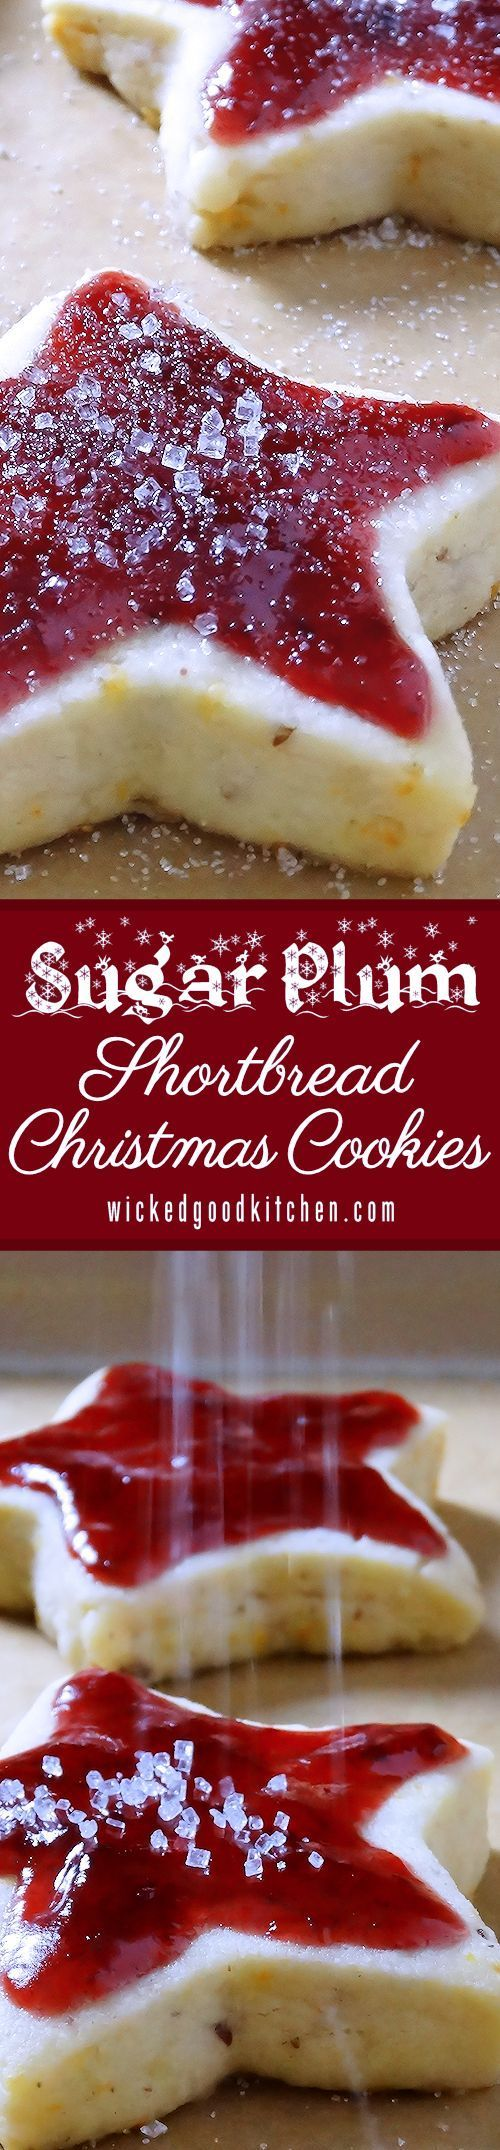 Sugar Plum Shortbread Christmas Cookies ~ Scrumptious old-fashioned buttery shortbread kissed with sunny orange zest, pecans and a whisper of spices topped with Sugar Plum Jam. They are like a jam-topped English scone turned into a shortbread cookie! Everyone will LOVE them! Includes gluten free option. | sugarplum #Christmas #Holidays recipe